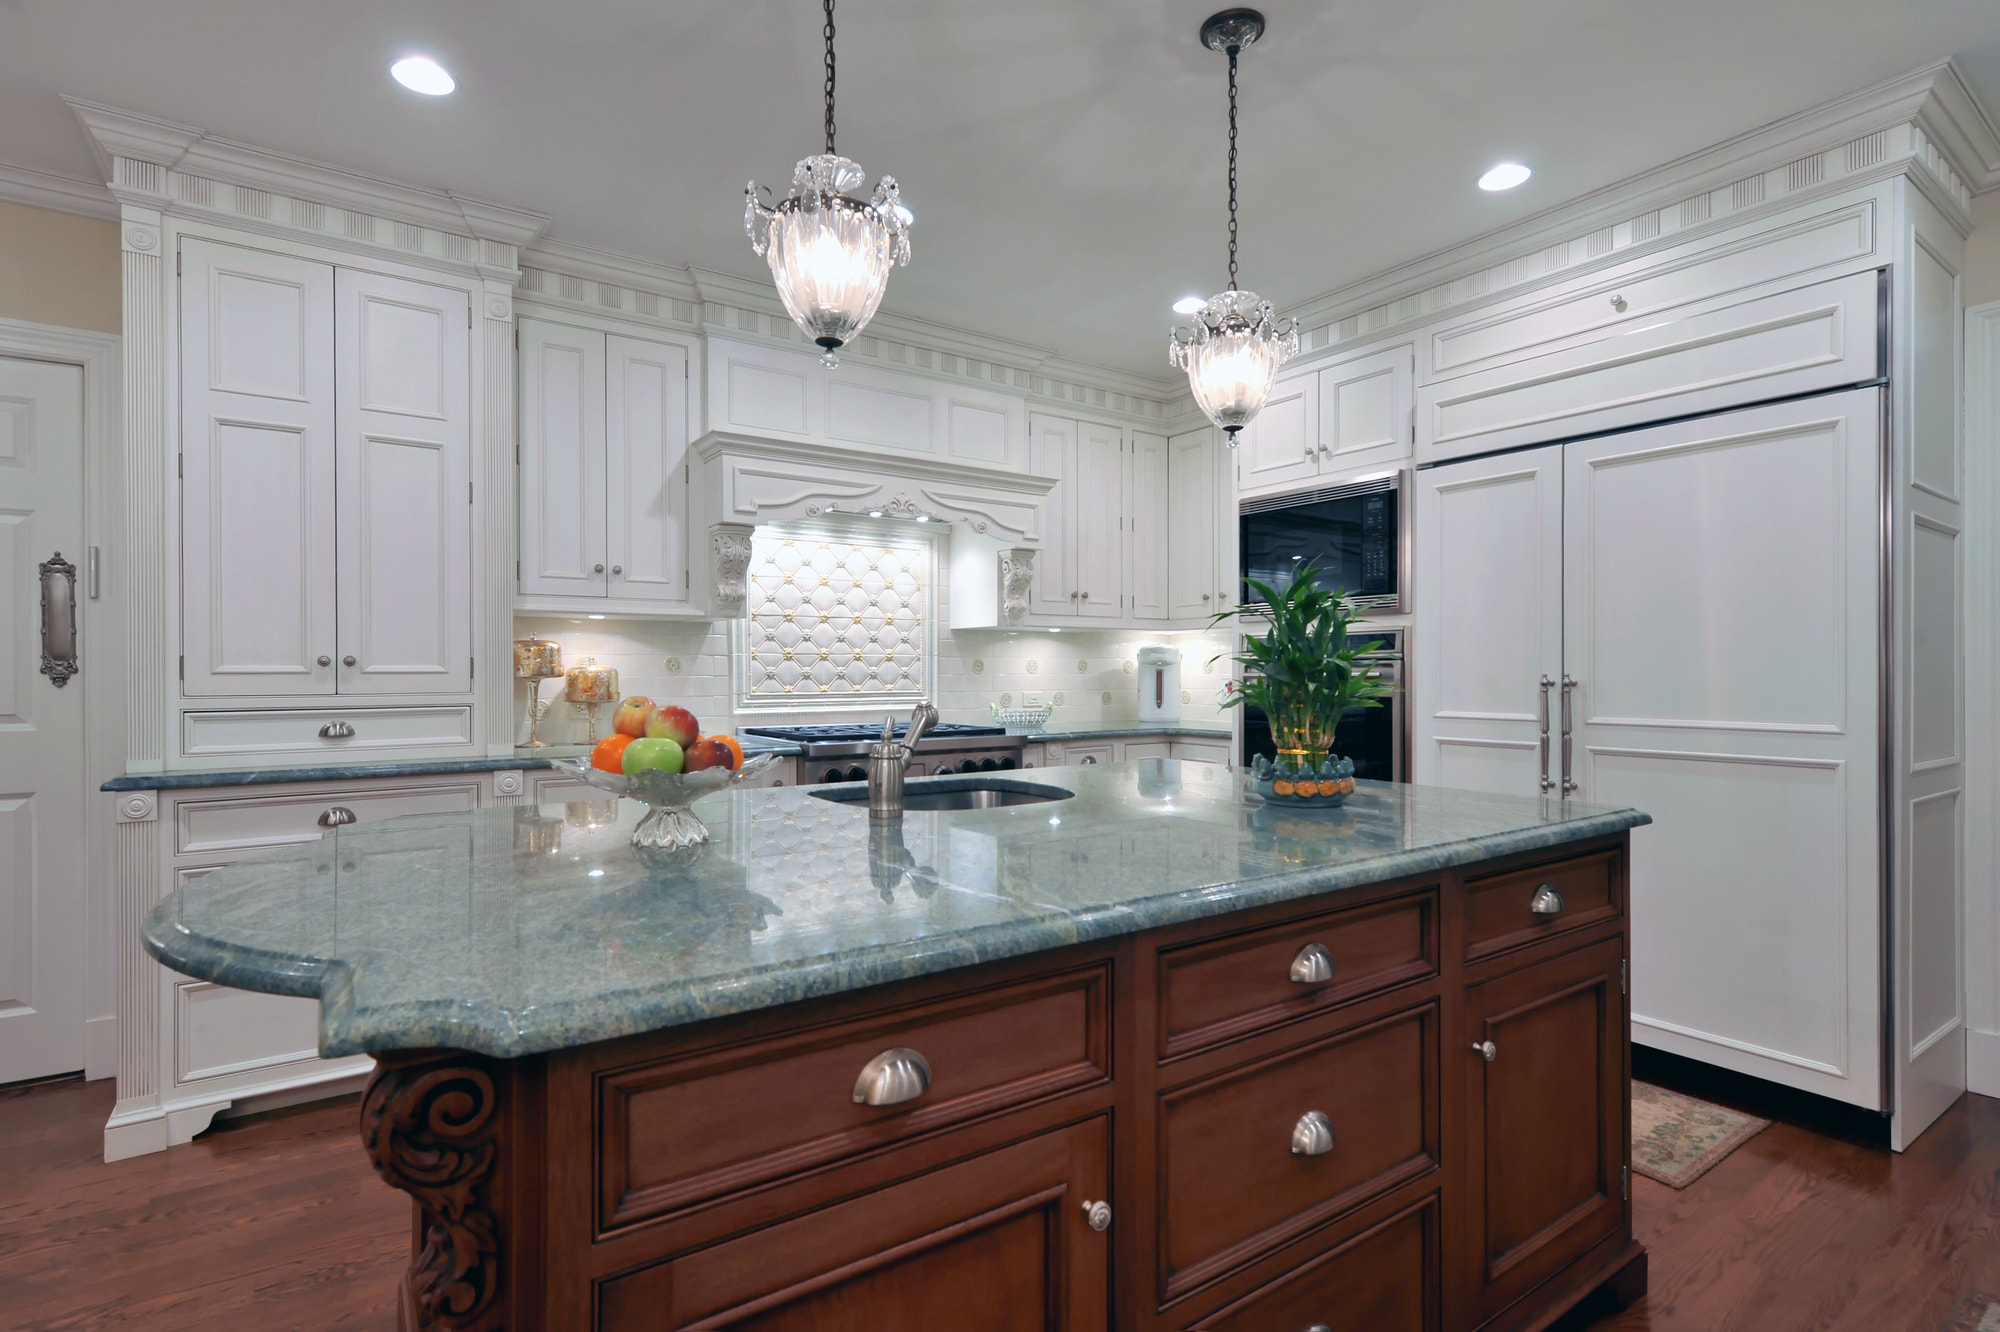 Traditional style kitchen with large kitchen shelves